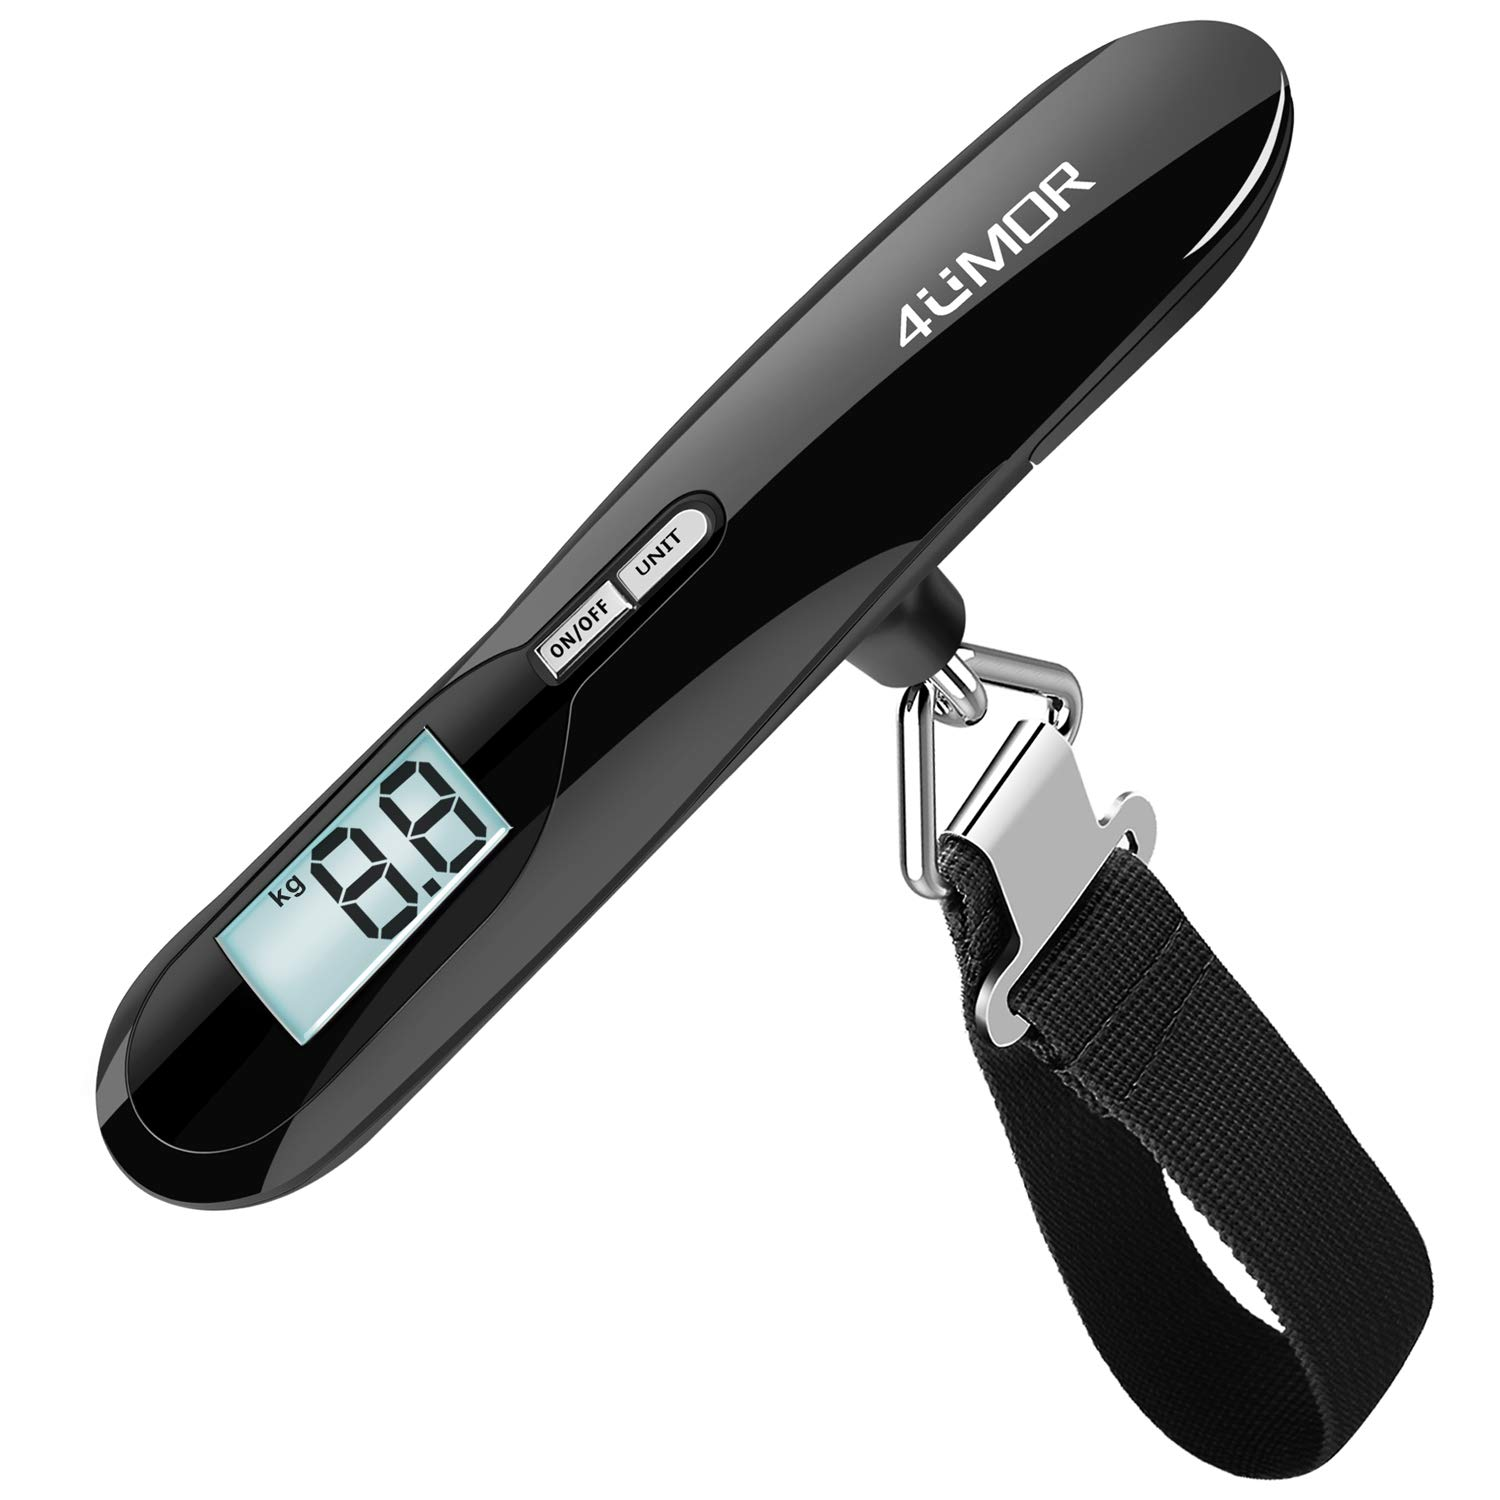 f349178d83af Electronic Luggage Scale, 4UMOR Portable Digital Suitcase Hanging Scales  with Tare Function Weighing Scale with Backlit Display for ...